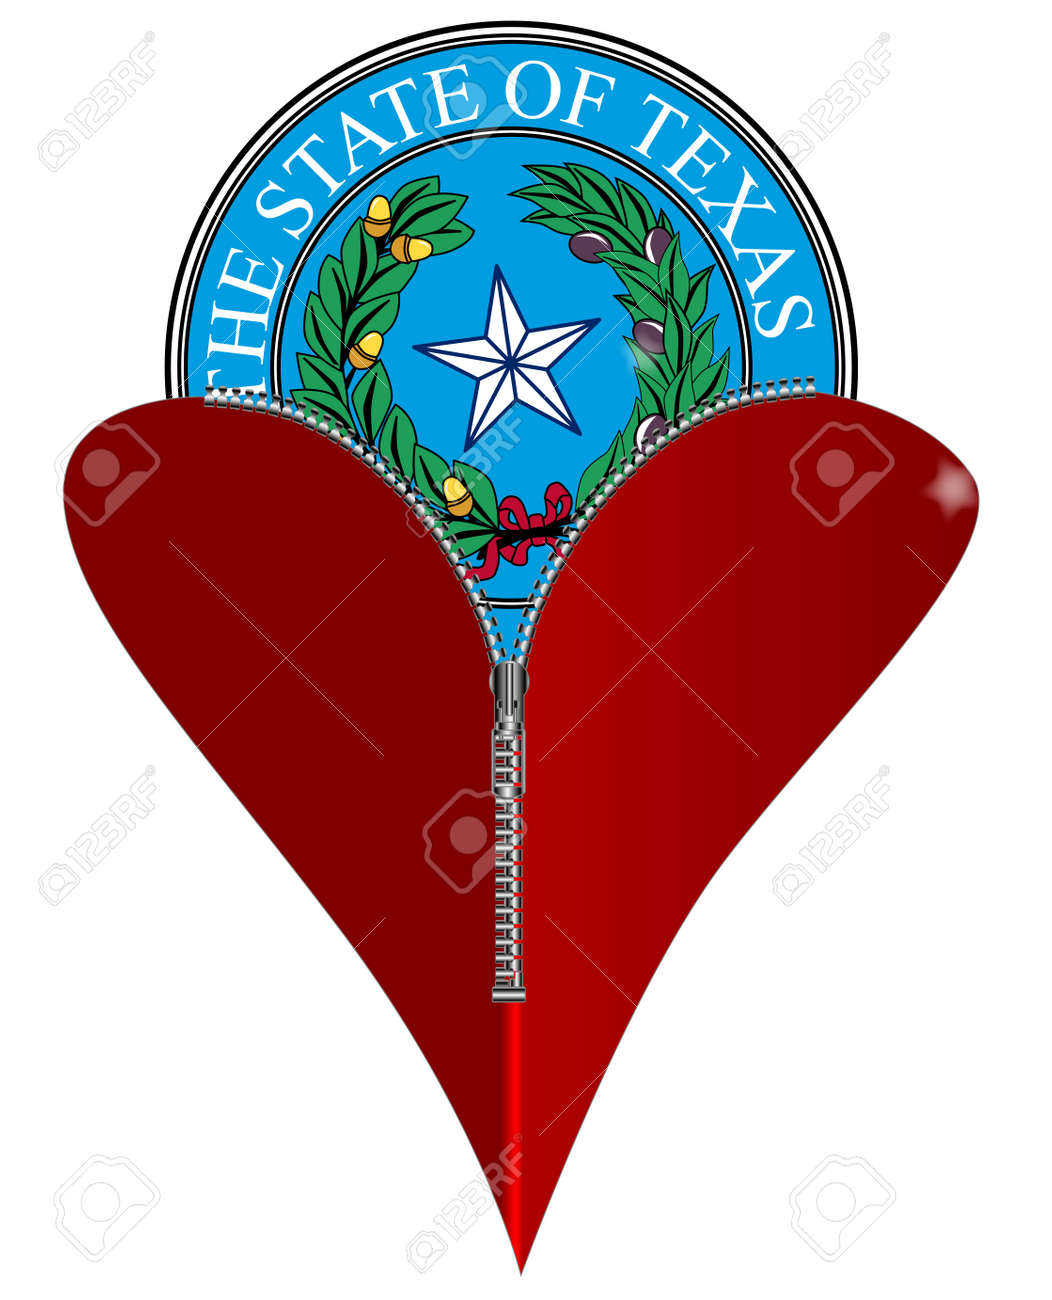 A red heart with a zipper showing texas state seal rising from a red heart with a zipper showing texas state seal rising from within stock vector biocorpaavc Images